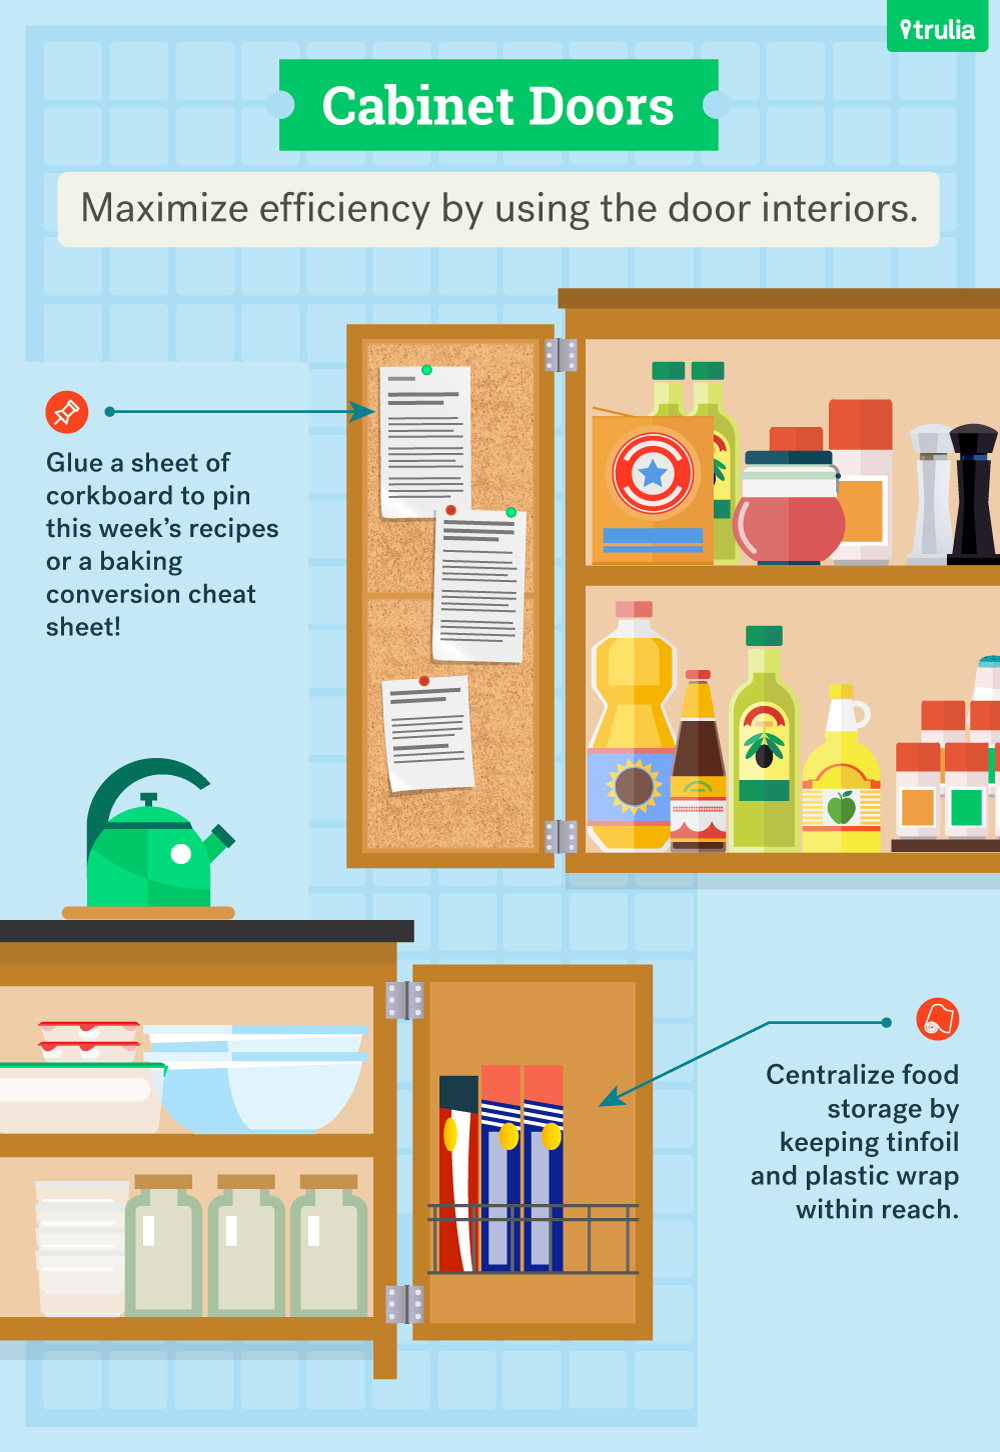 Hacks-To-Organize-Your-Kitchen-Like-A-Pro-  sc 1 st  Trulia & The Ultimate Guide to Kitchen Organization - Truliau0027s Blog - Life at ...